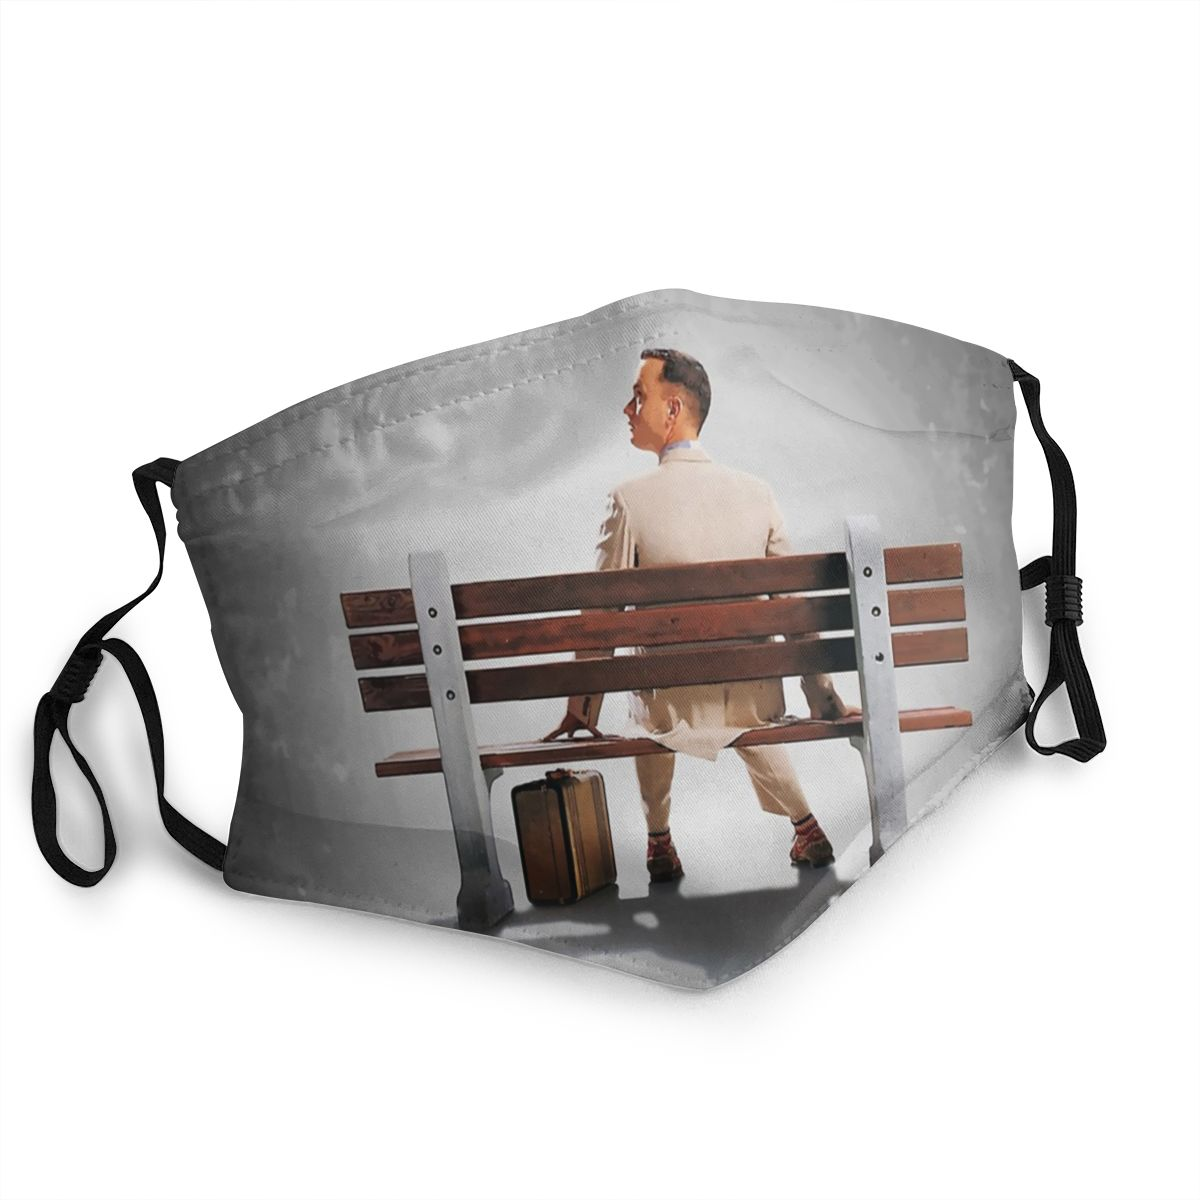 Forrest Gump Non-Disposable Face Mask Tom Hanks Movie Anti Haze Dustproof Mask Protection Cover Respirator Mouth Muffle